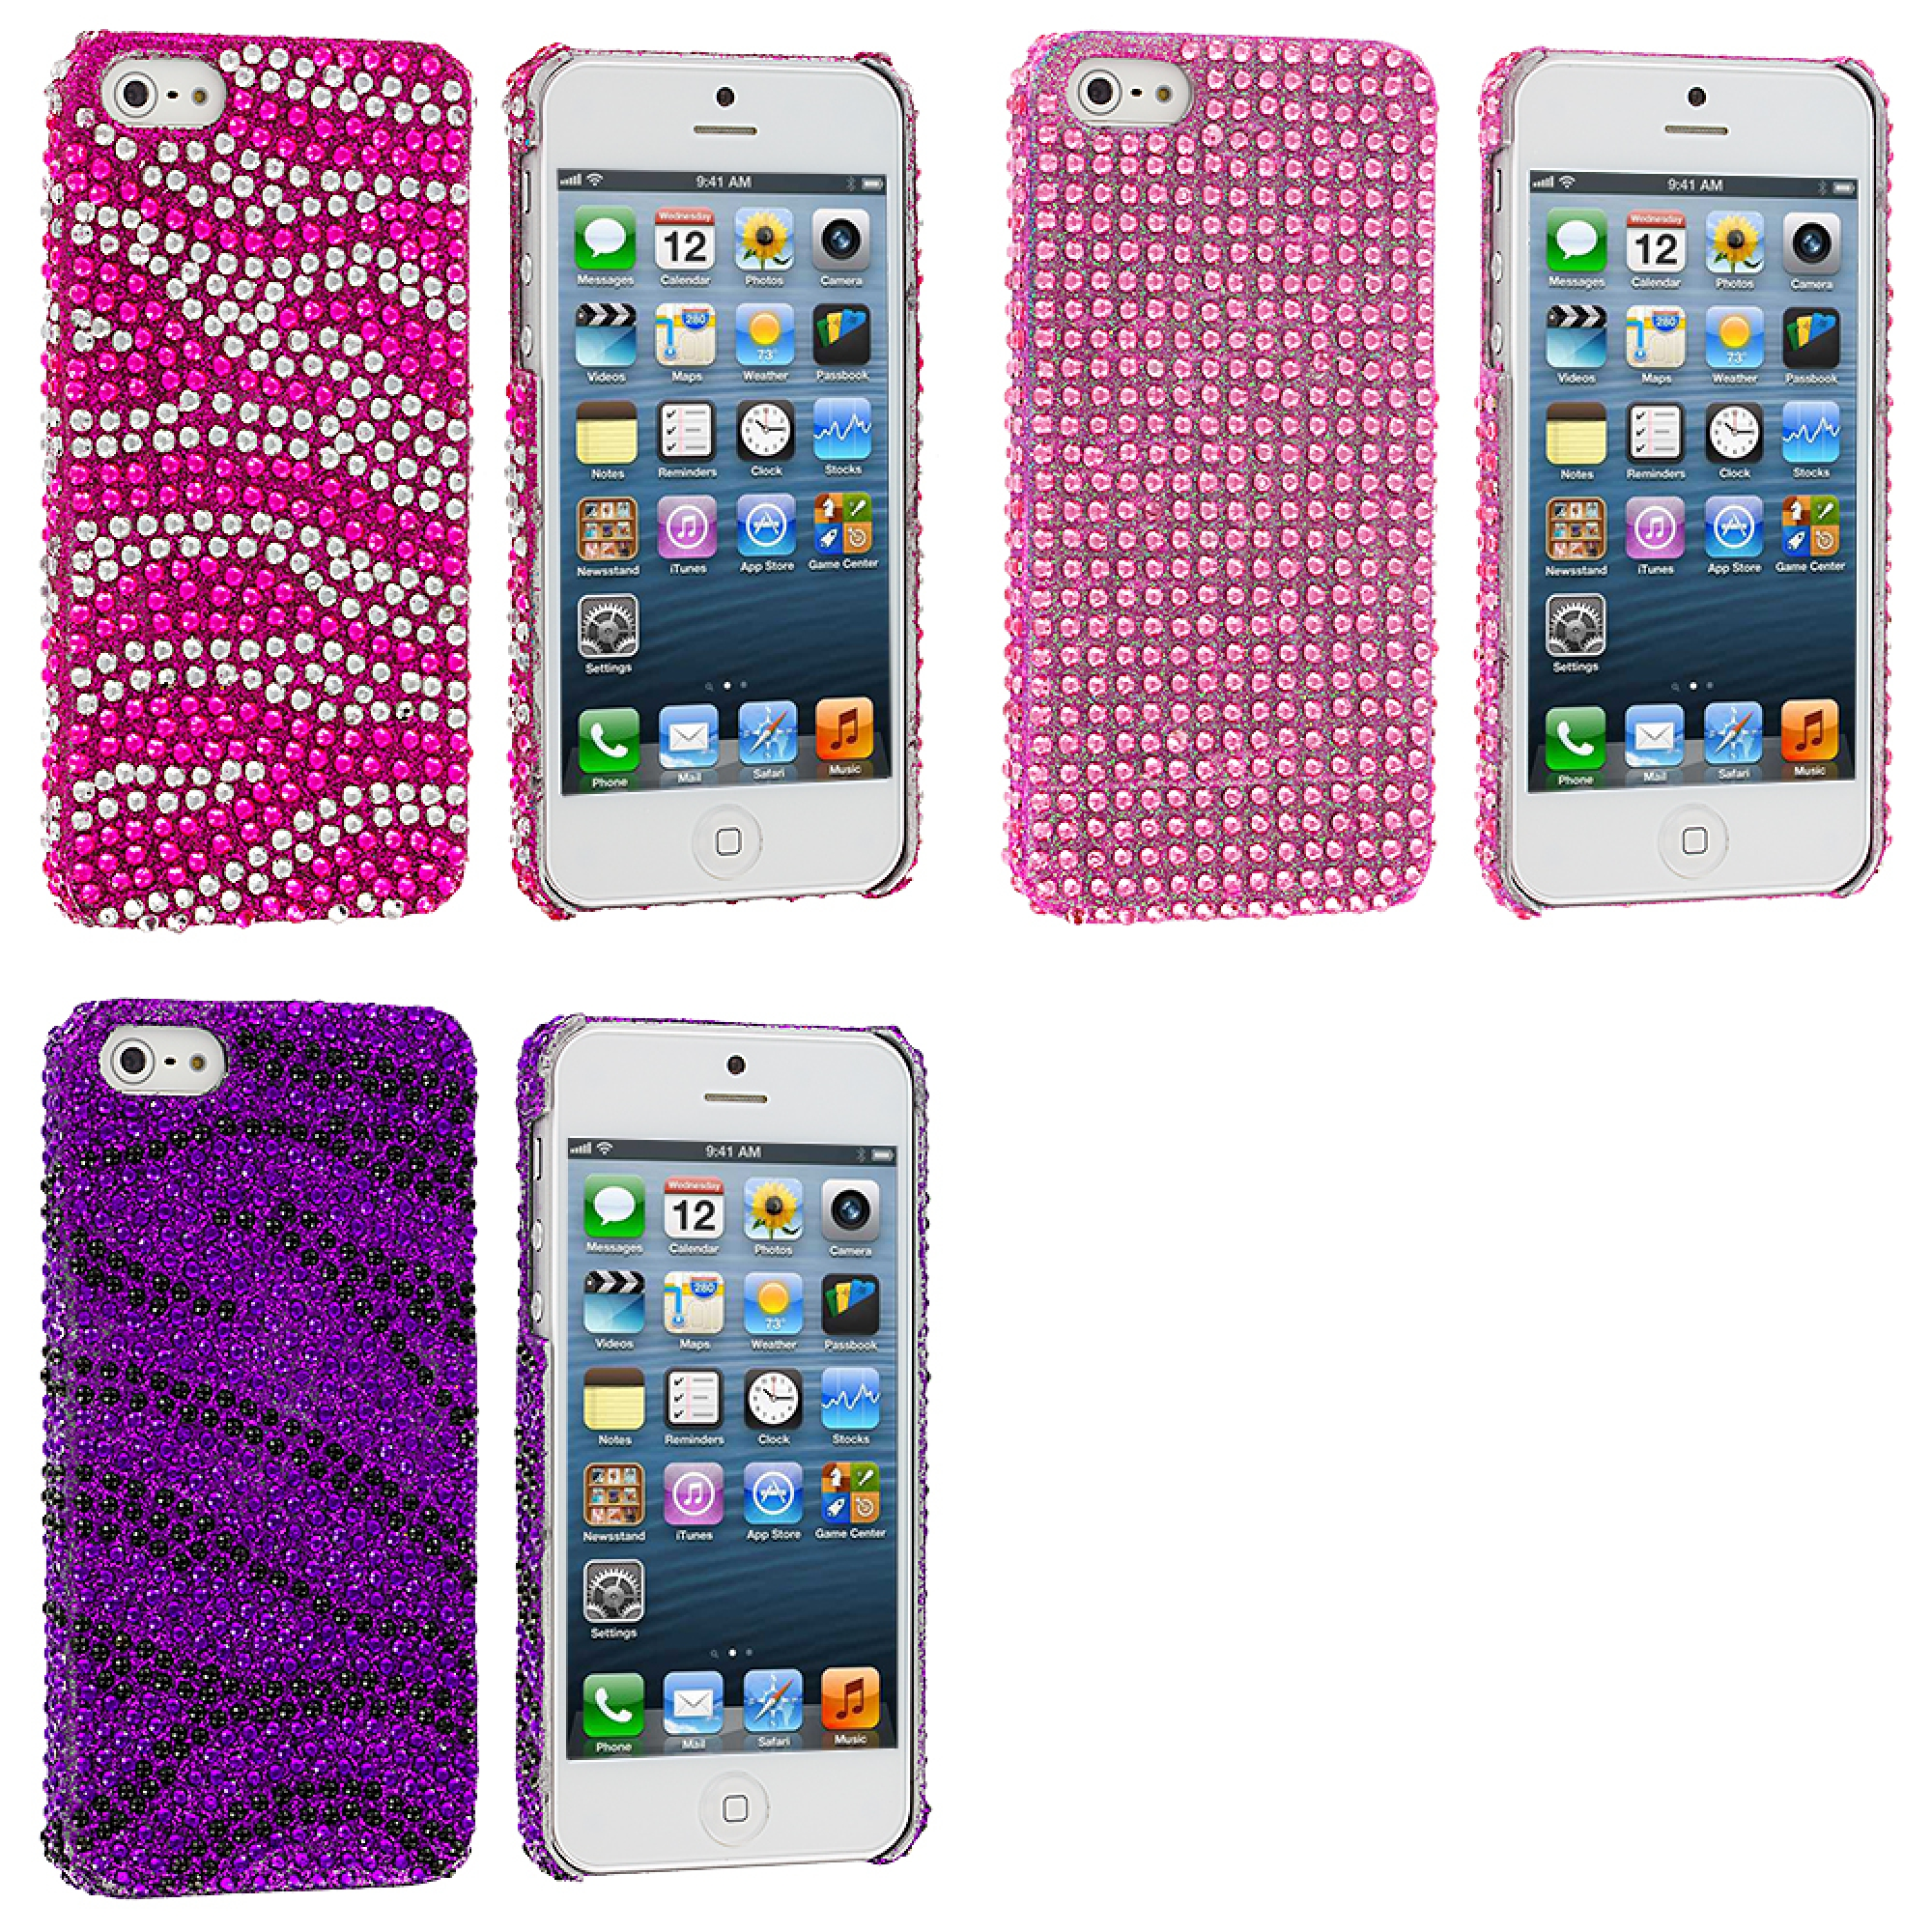 Apple iPhone 5/5S/SE Combo Pack : Hot Pink / Silver Zebra Bling Rhinestone Case Cover